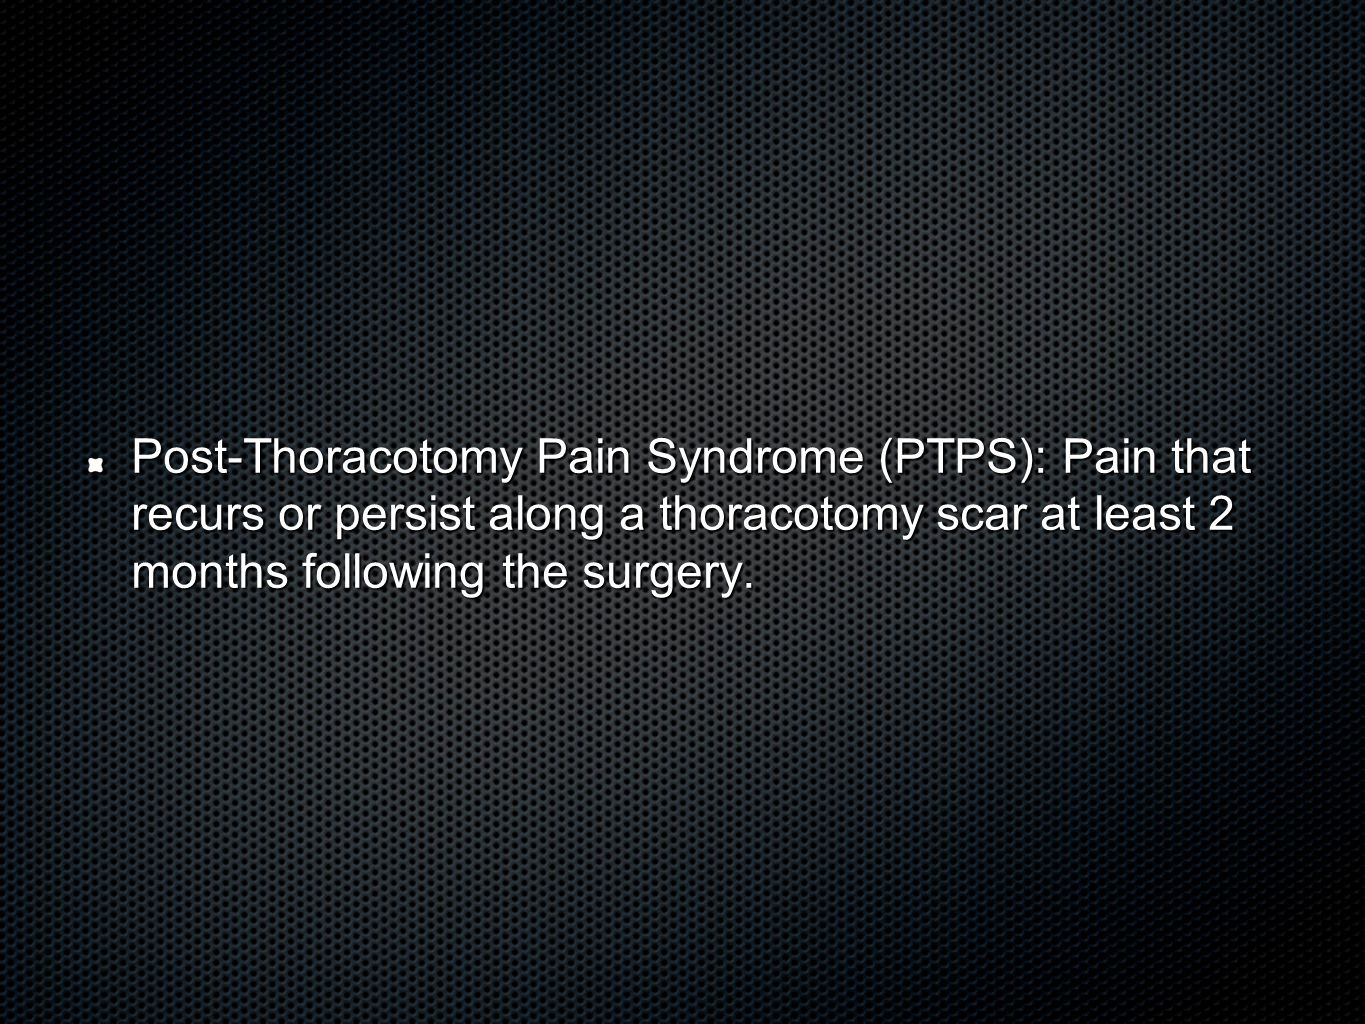 Post-Thoracotomy Pain Syndrome (PTPS): Pain that recurs or persist along a thoracotomy scar at least 2 months following the surgery.